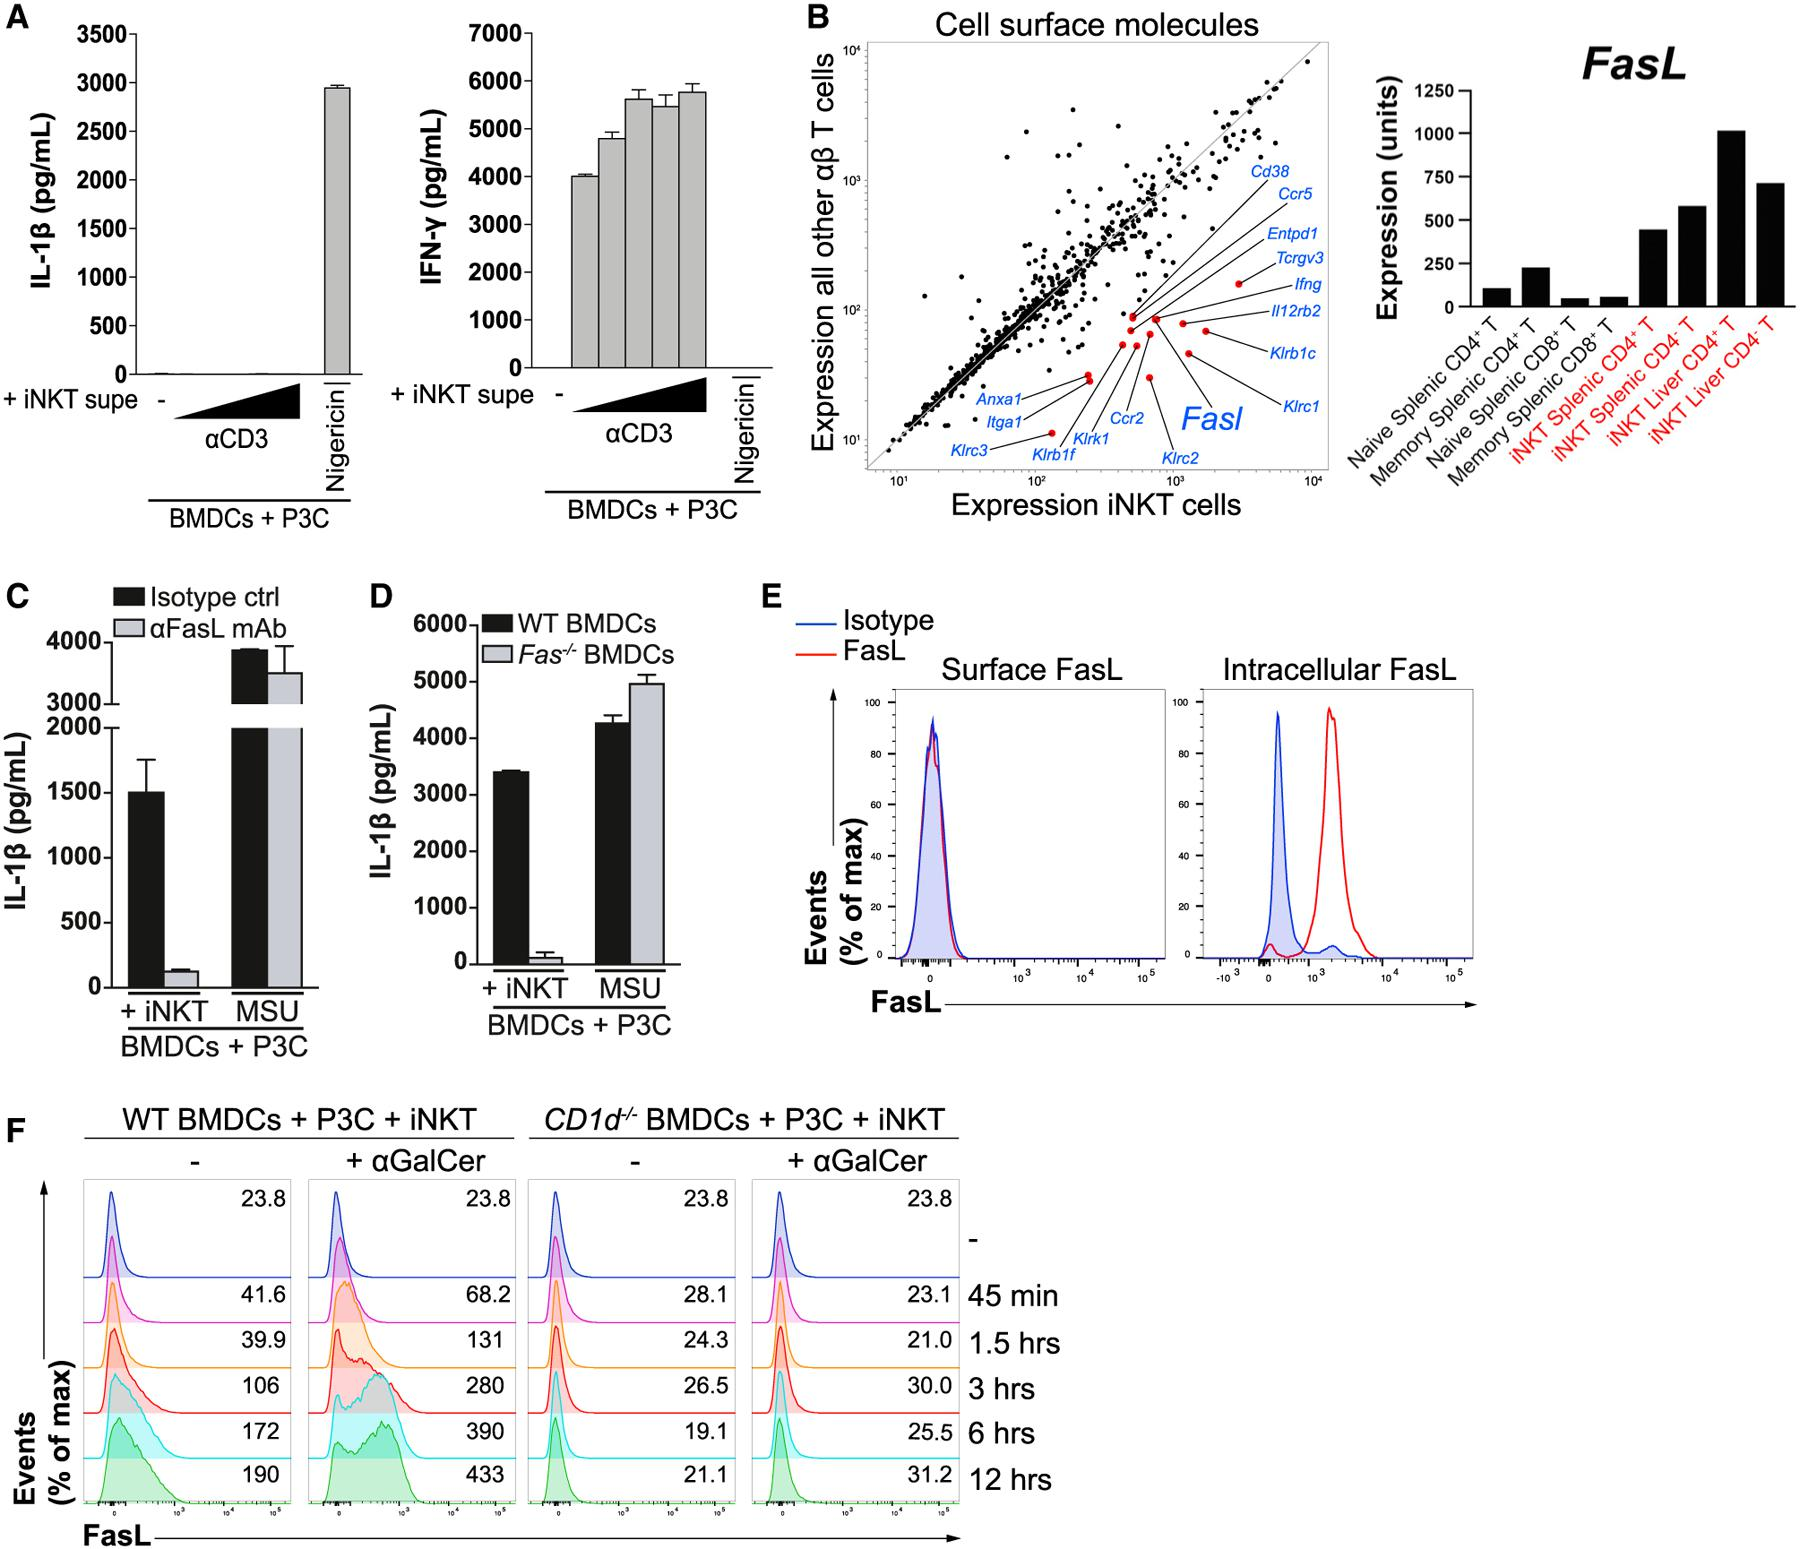 """iNKT Cells Employ the Death Receptor Ligand FasL to Instruct TLR-Primed BMDCs to Release IL-1β (A) iNKT cells were cultured in the presence of increasing concentrations of plate-bound anti-CD3 for 24 h, after which their cell-free Supes were used to stimulate P3C-primed BMDCs for 24 h. IL-1β (left) and interferon γ (IFN-γ; right) in the Supes were quantified by ELISA. Nigericin-stimulated BMDCs were used as a control. (B) The ImmGen database was mined to compare the expression of cell-surface proteins (Gene Ontology term """"cell surface,"""" GO0009986) expressed by iNKT cells versus other αβ T cells. The red dots represent genes expressed by iNKT cells with a fold change of greater than 5 compared with all other αβ T cells. Expression values comparing class means for specific T cell populations are shown in the right panel. (C) P3C-primed BMDCs were co-cultured with iNKT cells for 24 h in the presence of a FasL-blocking antibody (aFasL mAb) or an isotype control. IL-1β release was quantified by ELISA. MSU-treated BMDCs were used as a control. (D) P3C-primed BMDCs from WT and Fas −/− mice were co-cultured with iNKT cells for 24 h. IL-1β release was quantified by ELISA. MSU-treated BMDCs were used as a control. (E) Resting iNKT cells were stained with a FasL-specific antibody or an isotype control and subsequently analyzed by flow cytometry. The left panel represents surface staining, whereas the right panel represents permeabilized iNKT cells. (F) P3C-primed BMDCs from WT and CD1d −/− mice were co-cultured with CellTrace Violet-labeled-iNKT cells for the indicated times in the presence or absence of αGalCer, and the expression of FasL on the surface of iNKT cells was analyzed by flow cytometry. Numbers on the right of each histogram represent mean fluorescence intensity values. Error bars represent mean + SD of triplicate samples. Each panel is representative of at least three different experiments."""